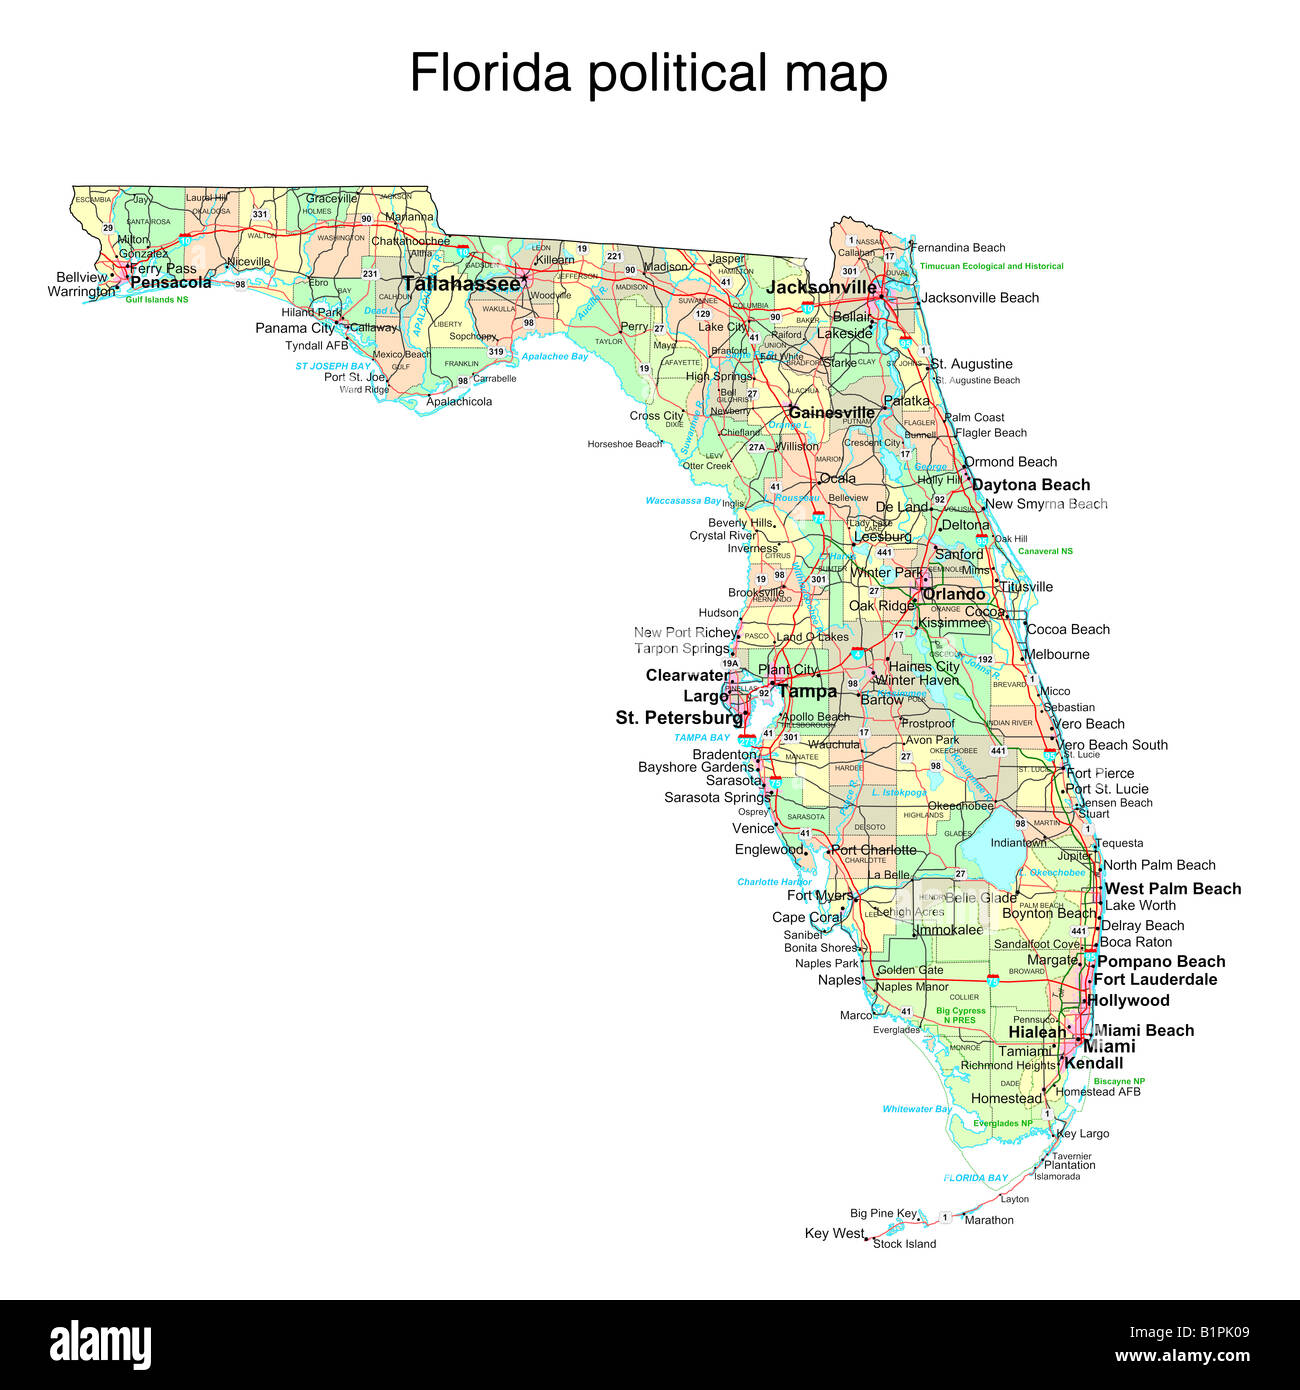 Map De Florida.Florida State Political Map Stock Photo 18322873 Alamy